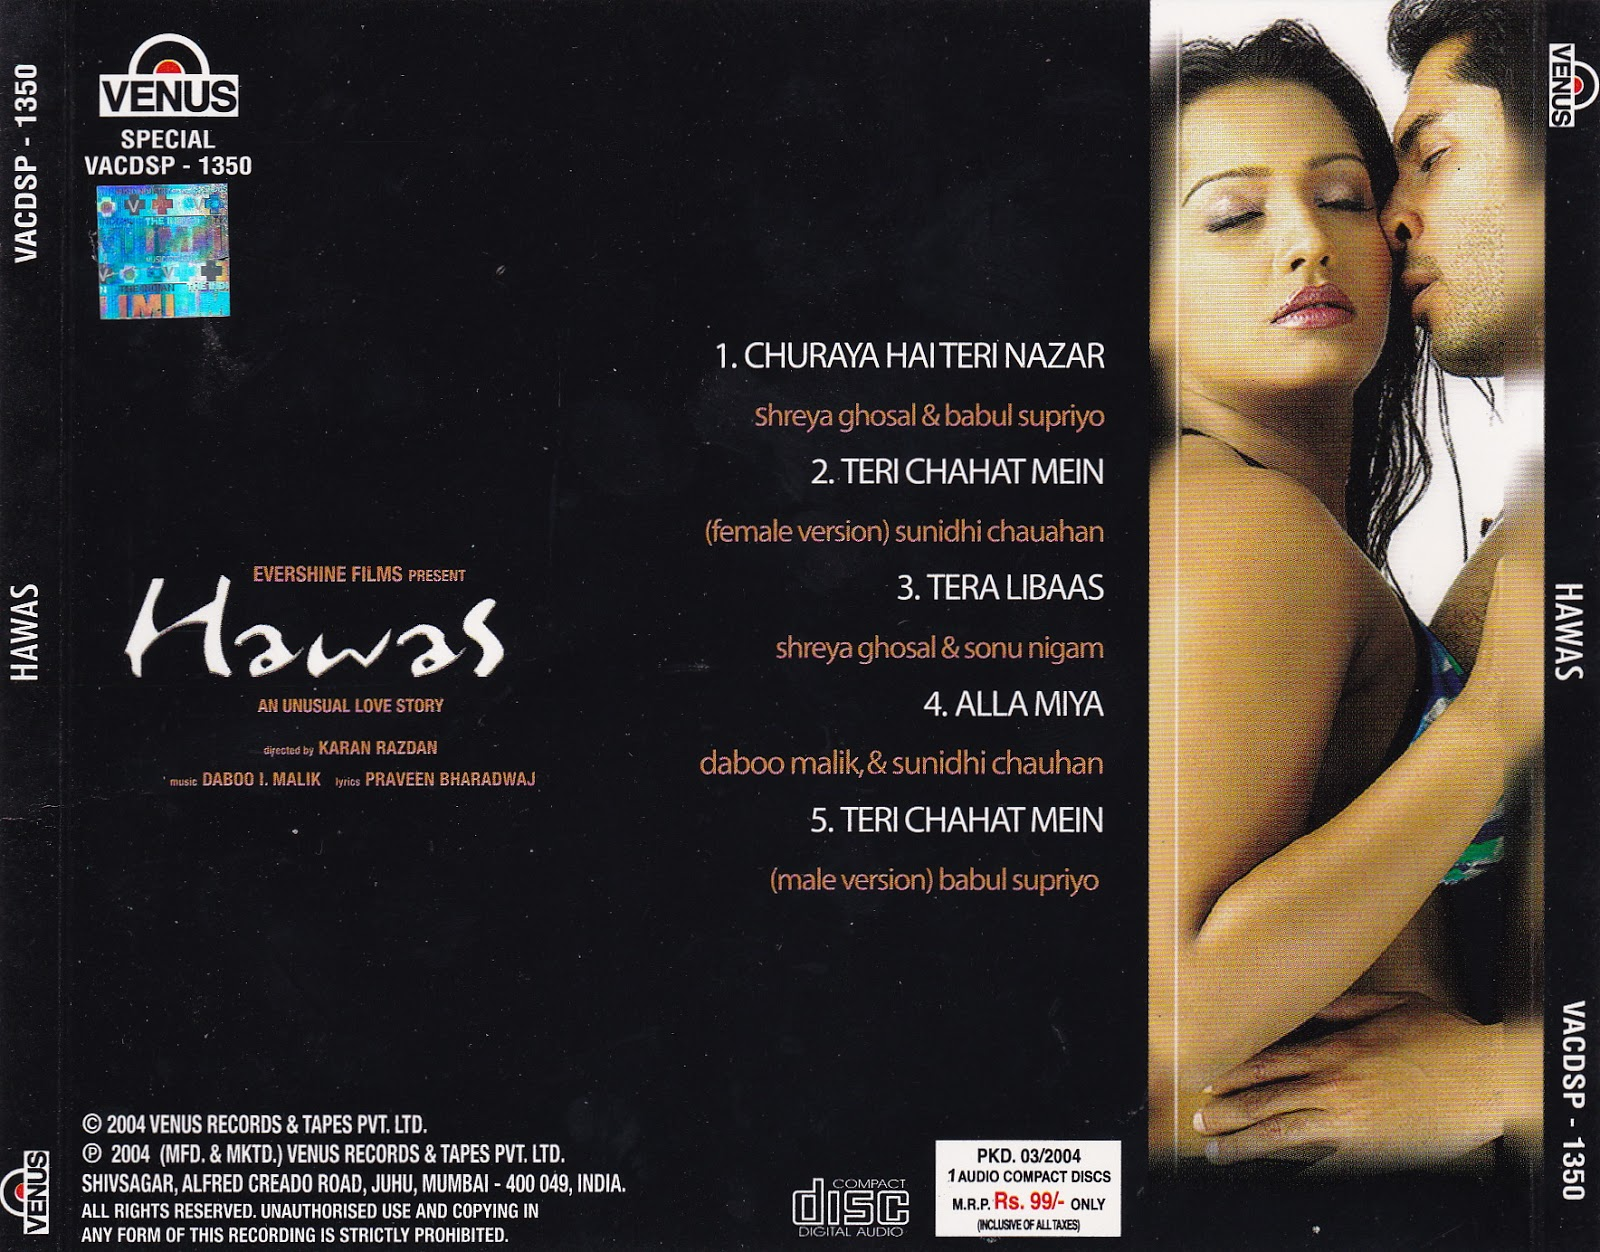 Hawas Movie Mp3 Songs 2004 Hasil Final India Super Series 2014